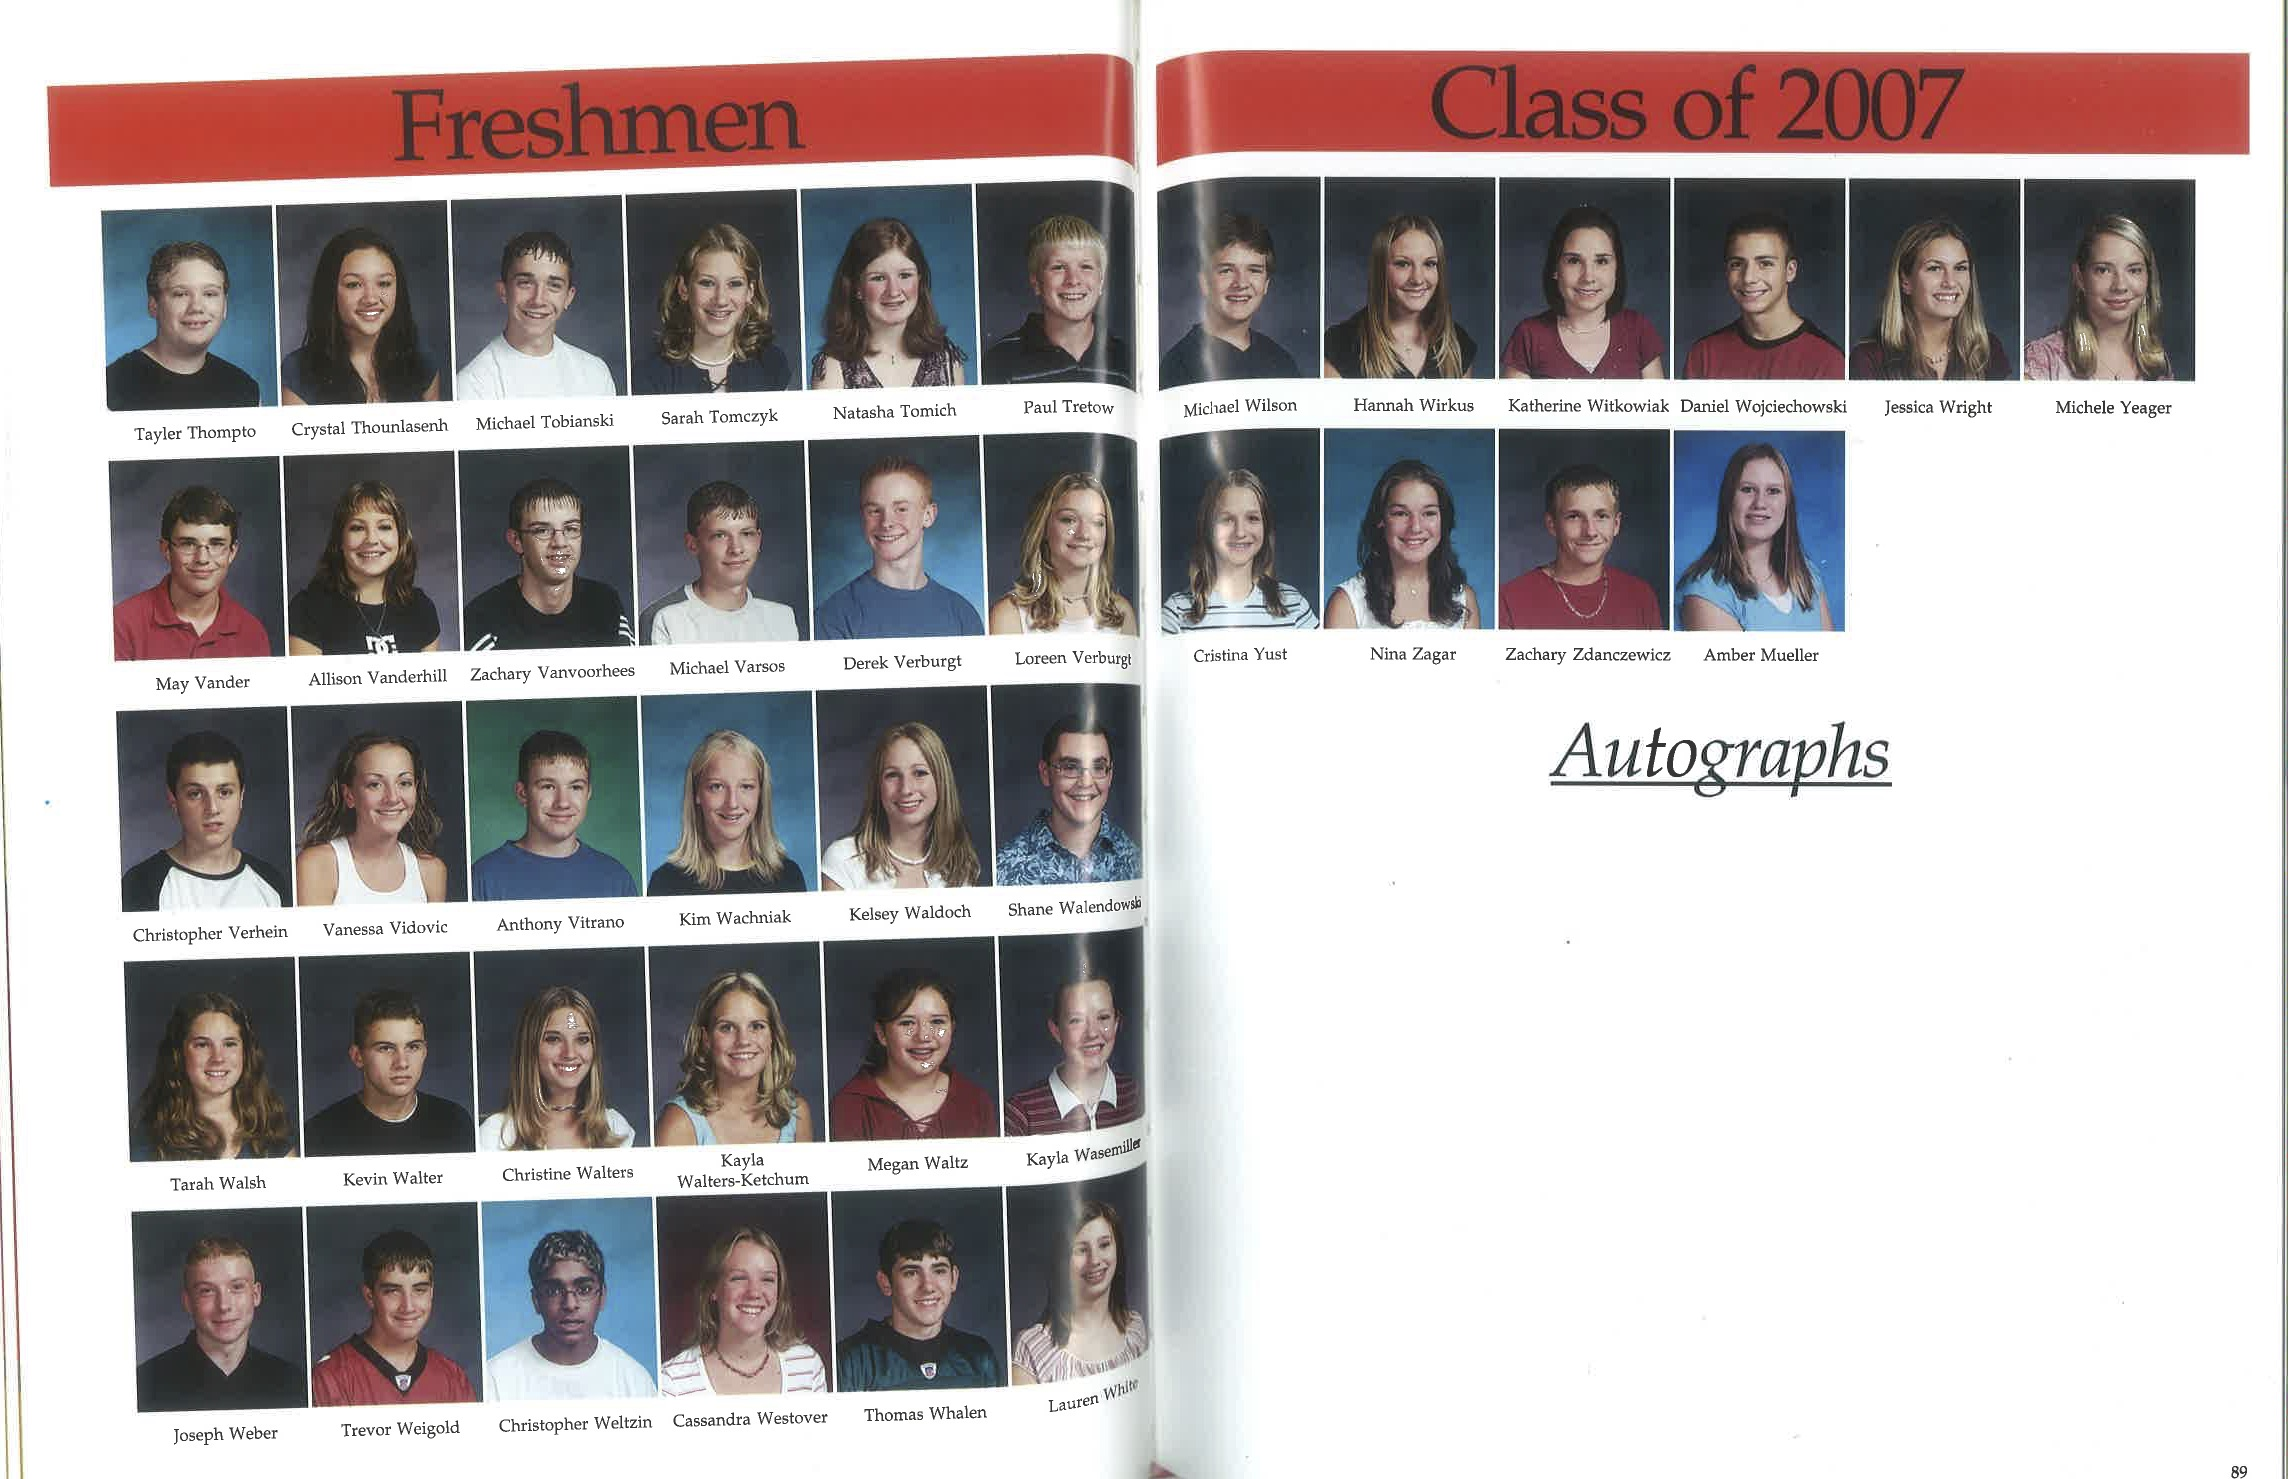 2004_Yearbook_45.jpg